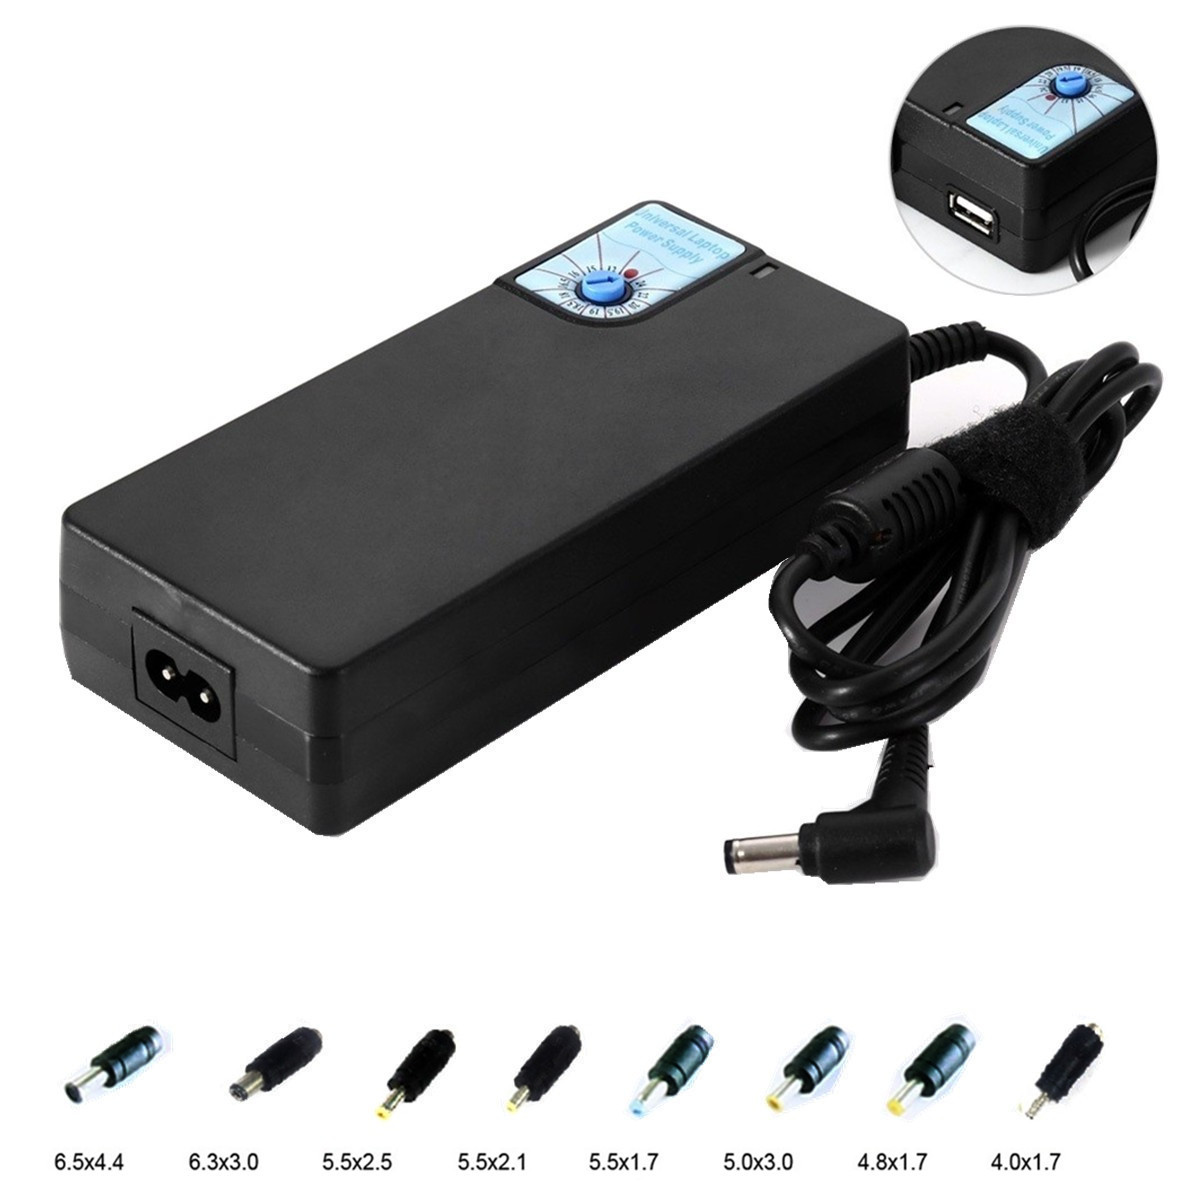 SP26 Universal Laptop Power Supply Adjustable Voltage with USB interface